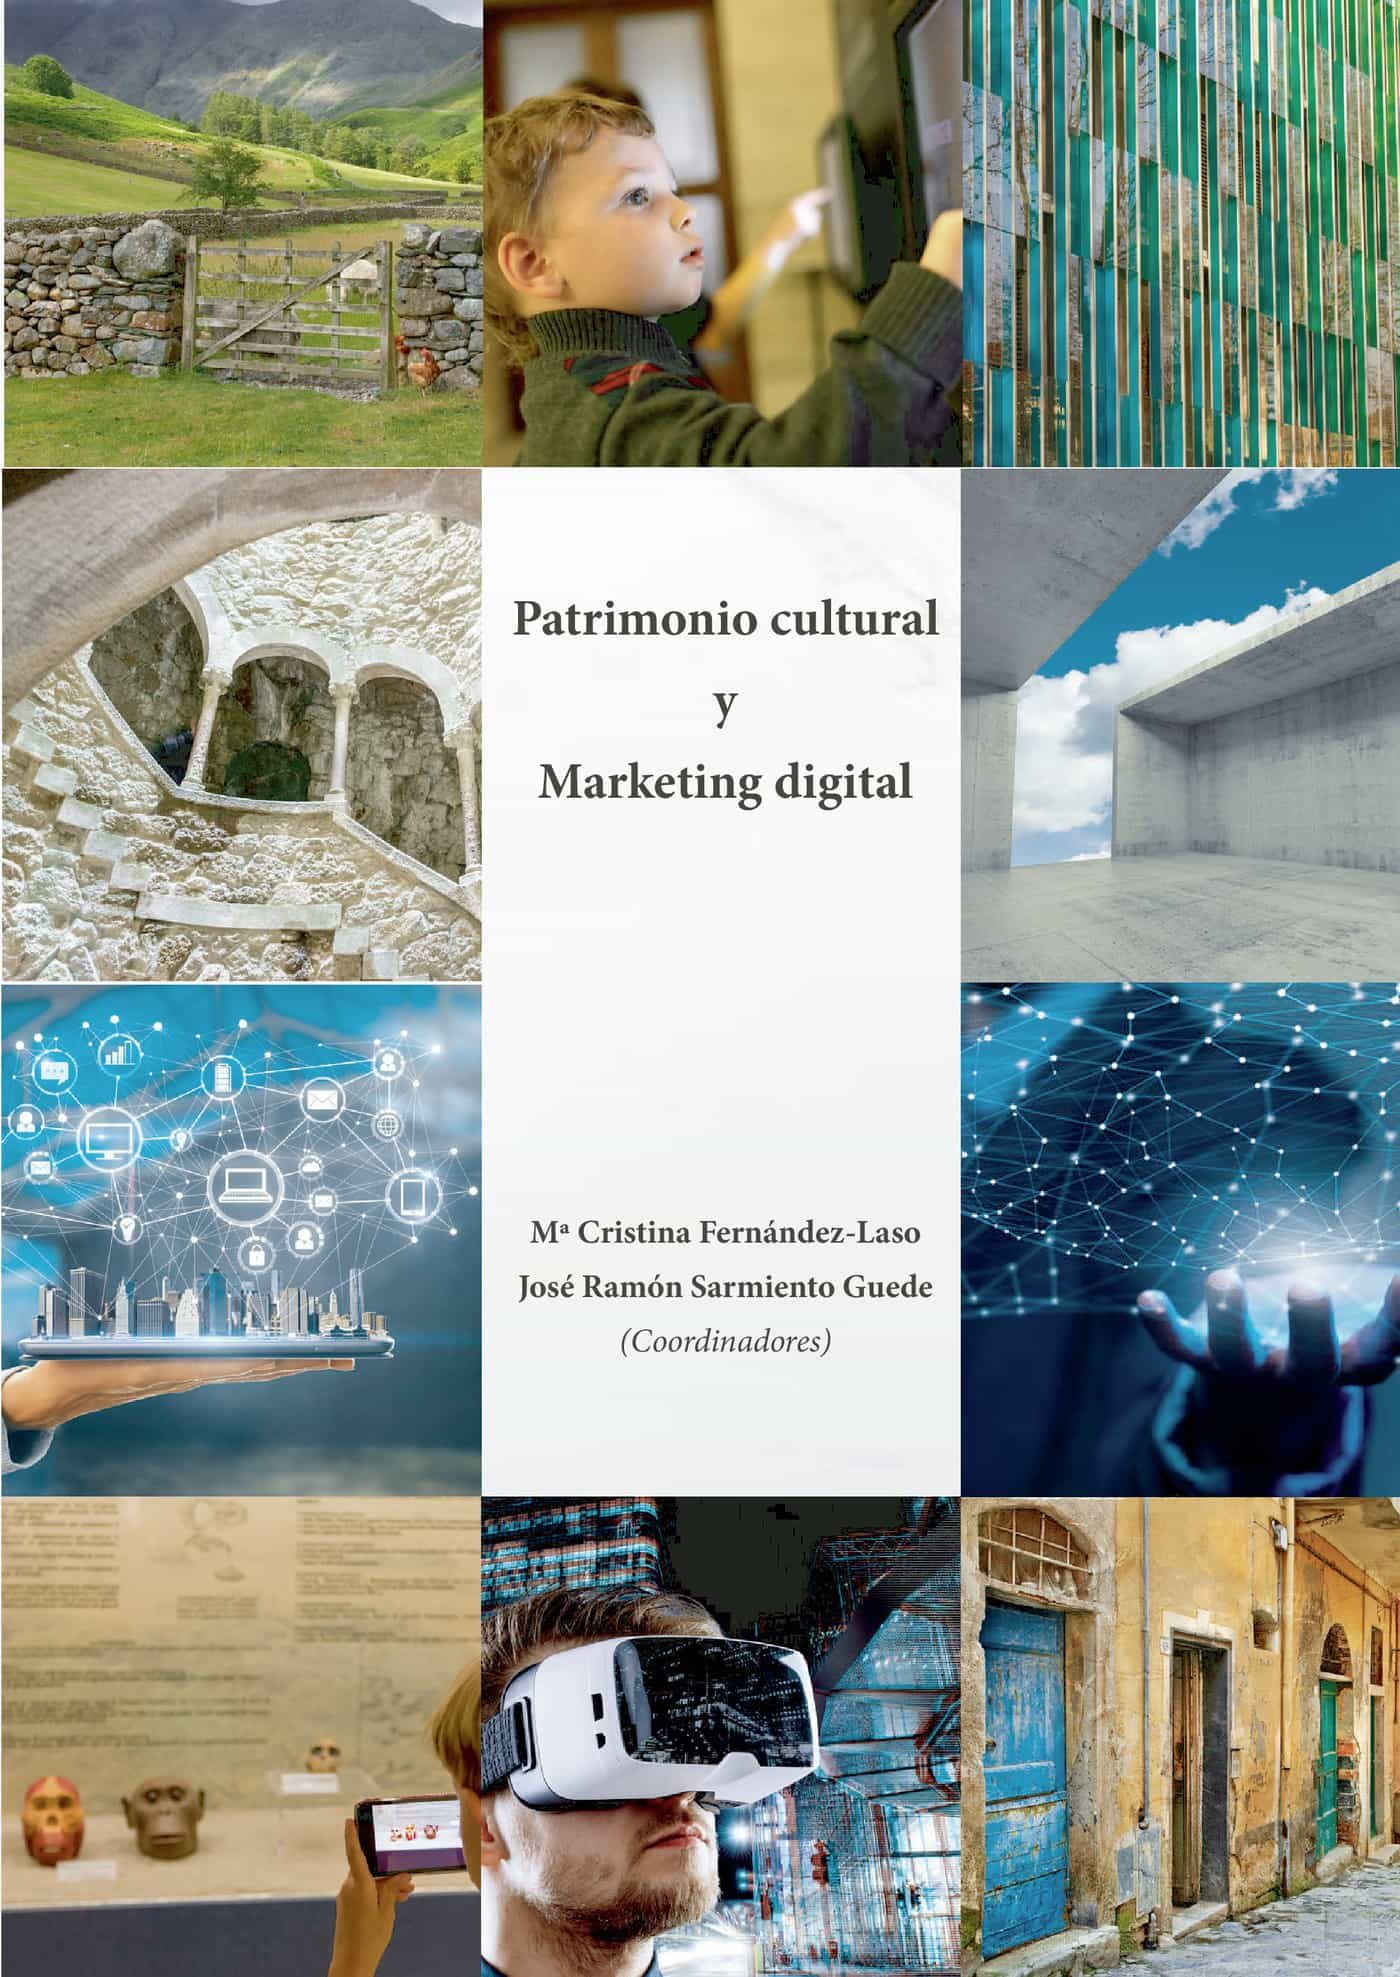 PATRIMONIO CULTURAL Y MARKETING DIGITAL.